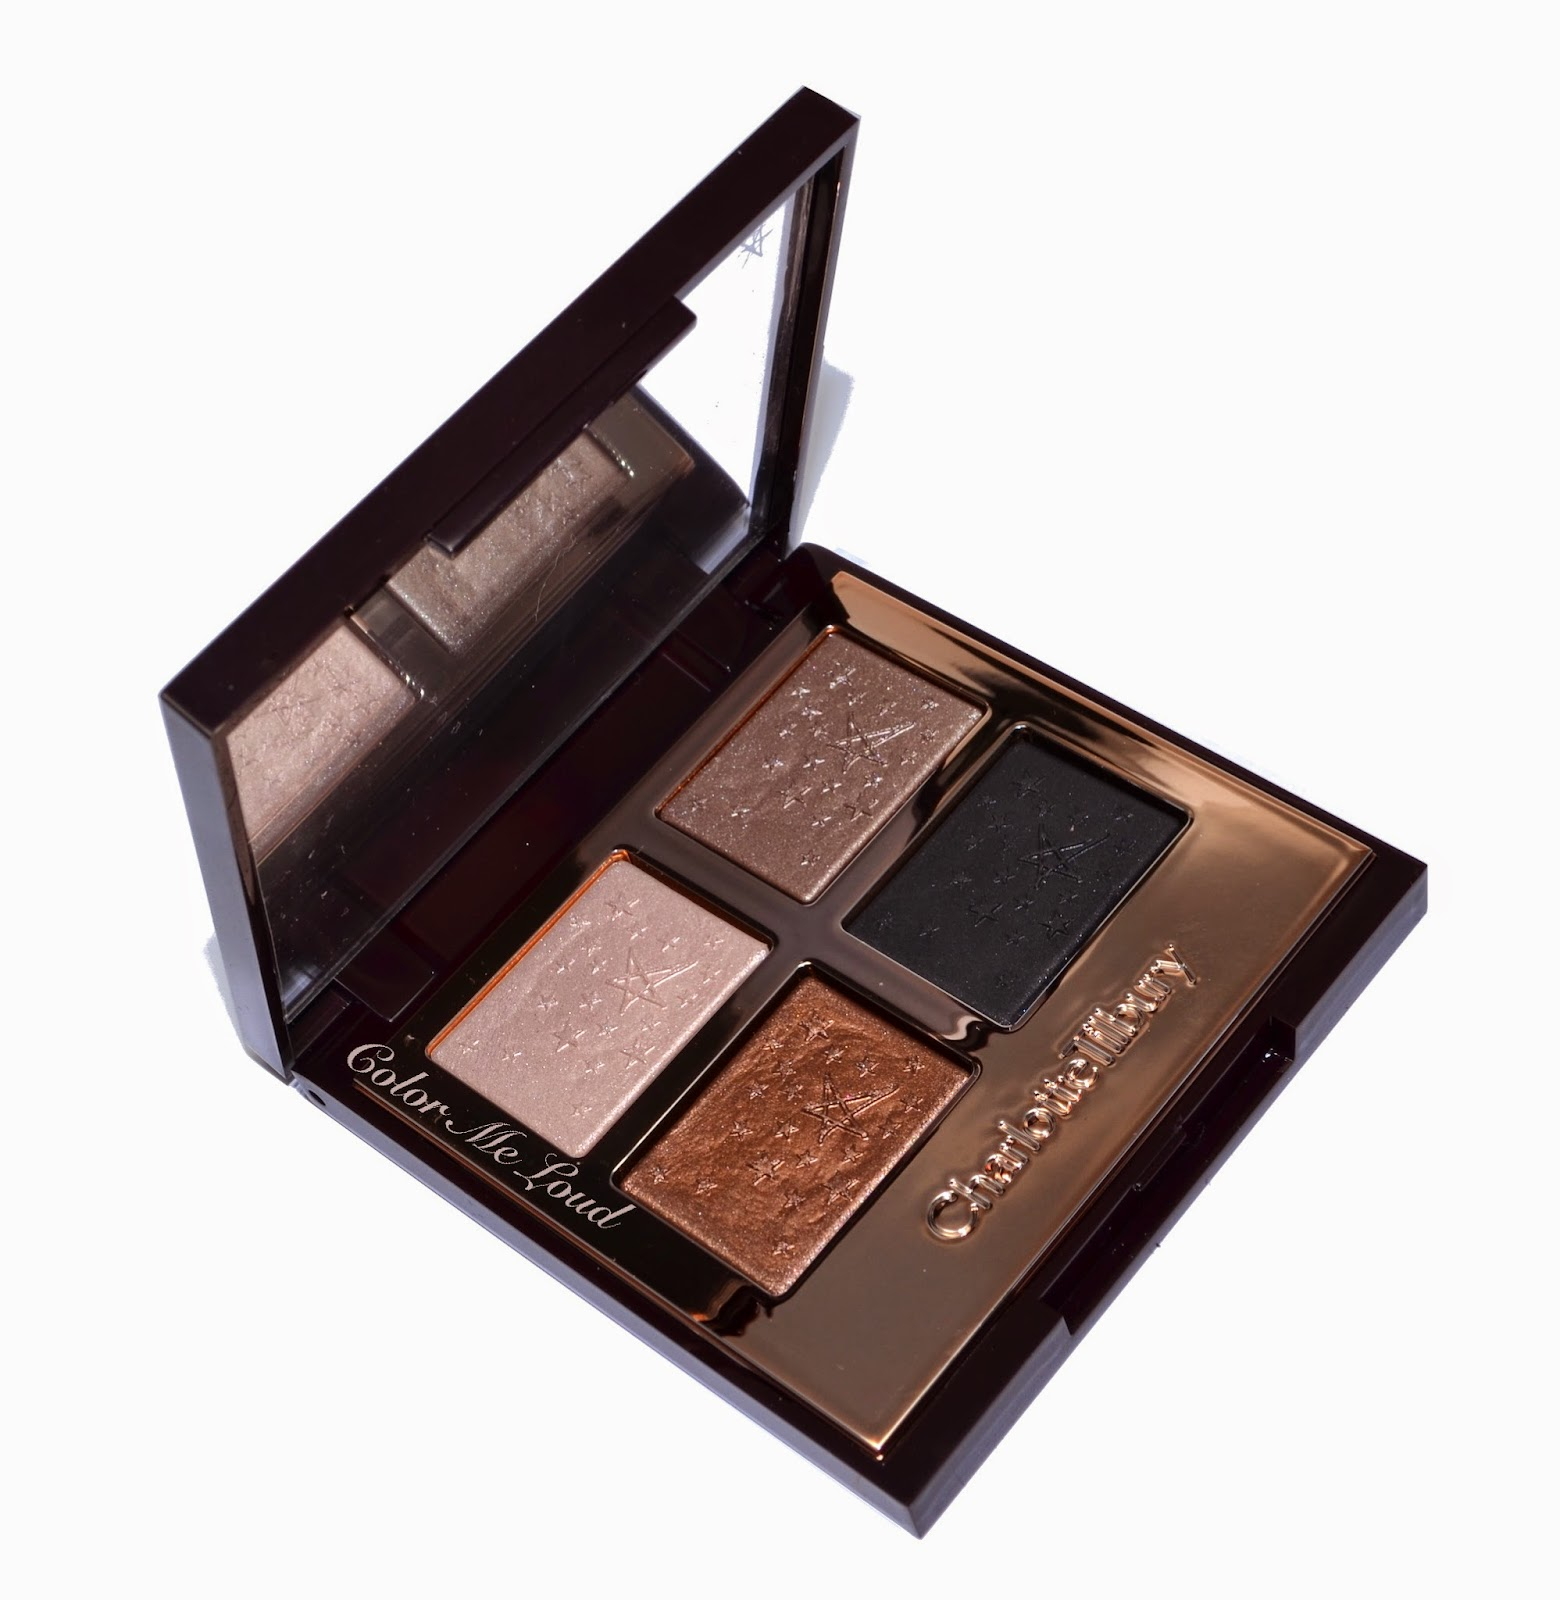 charlotte tilbury fallen angel luxury eyeshadow palette. Black Bedroom Furniture Sets. Home Design Ideas